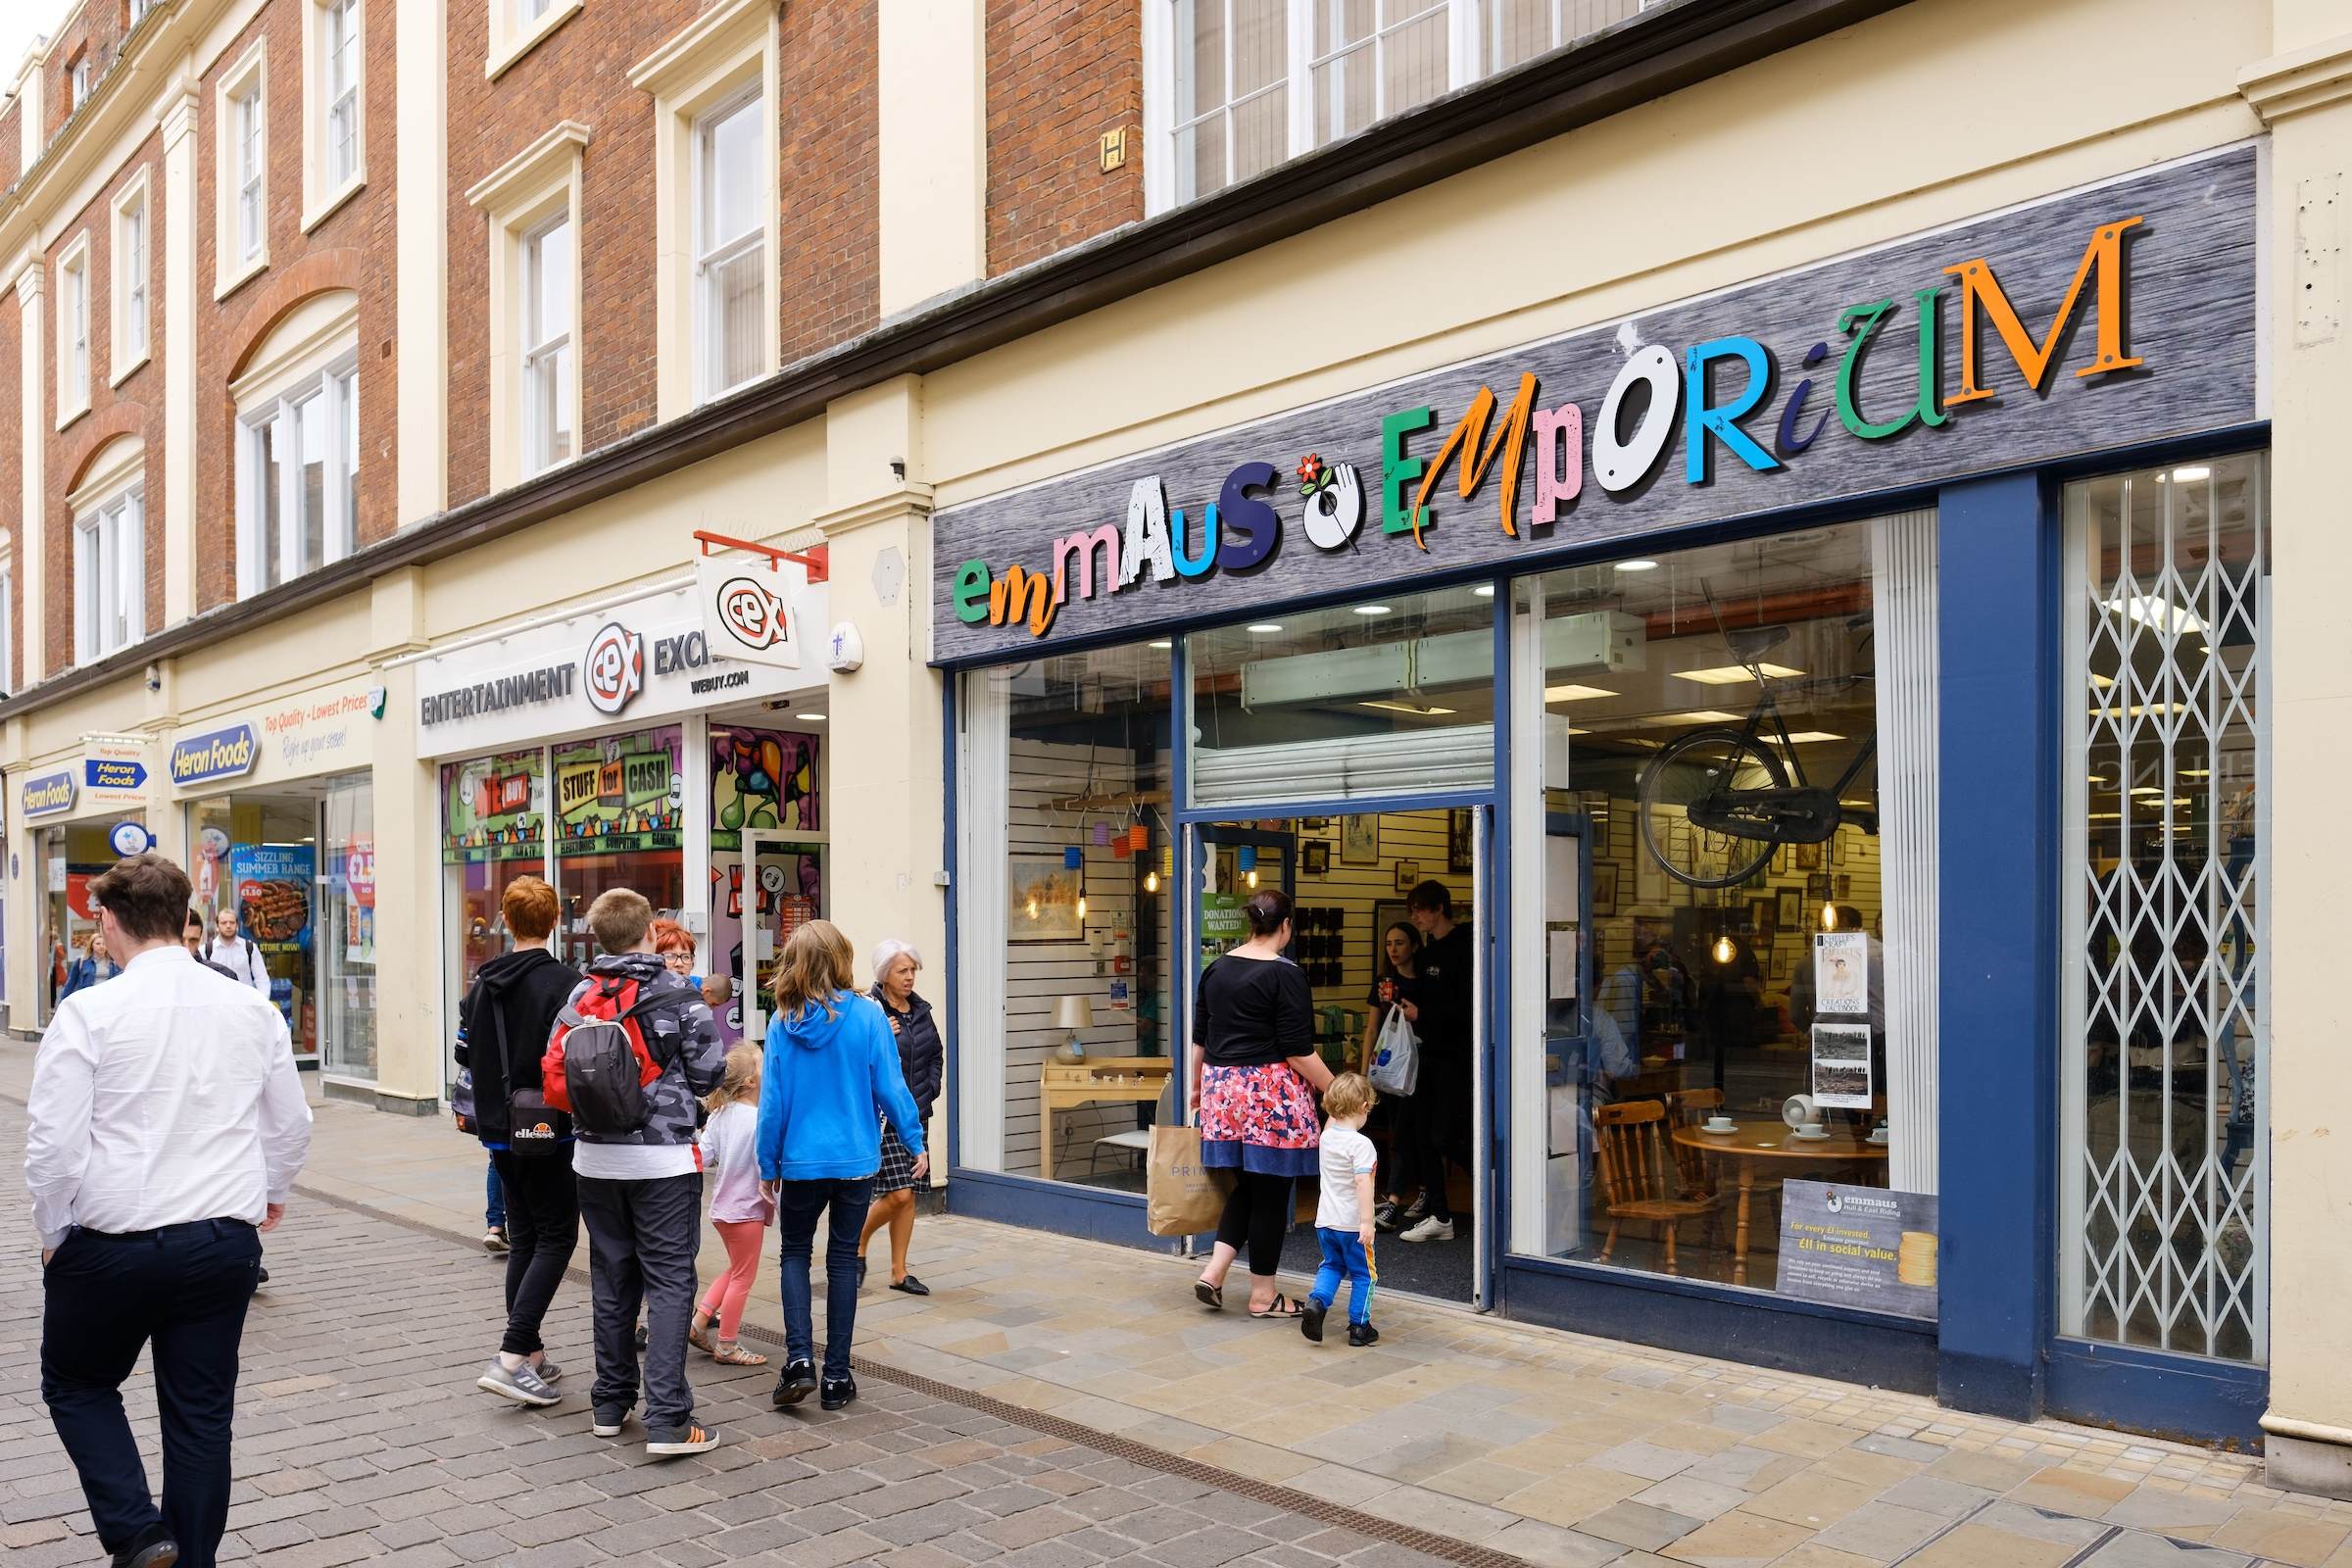 The Emmaus Emporium in Whitefriargate. Picture: Neil Holmes Photography